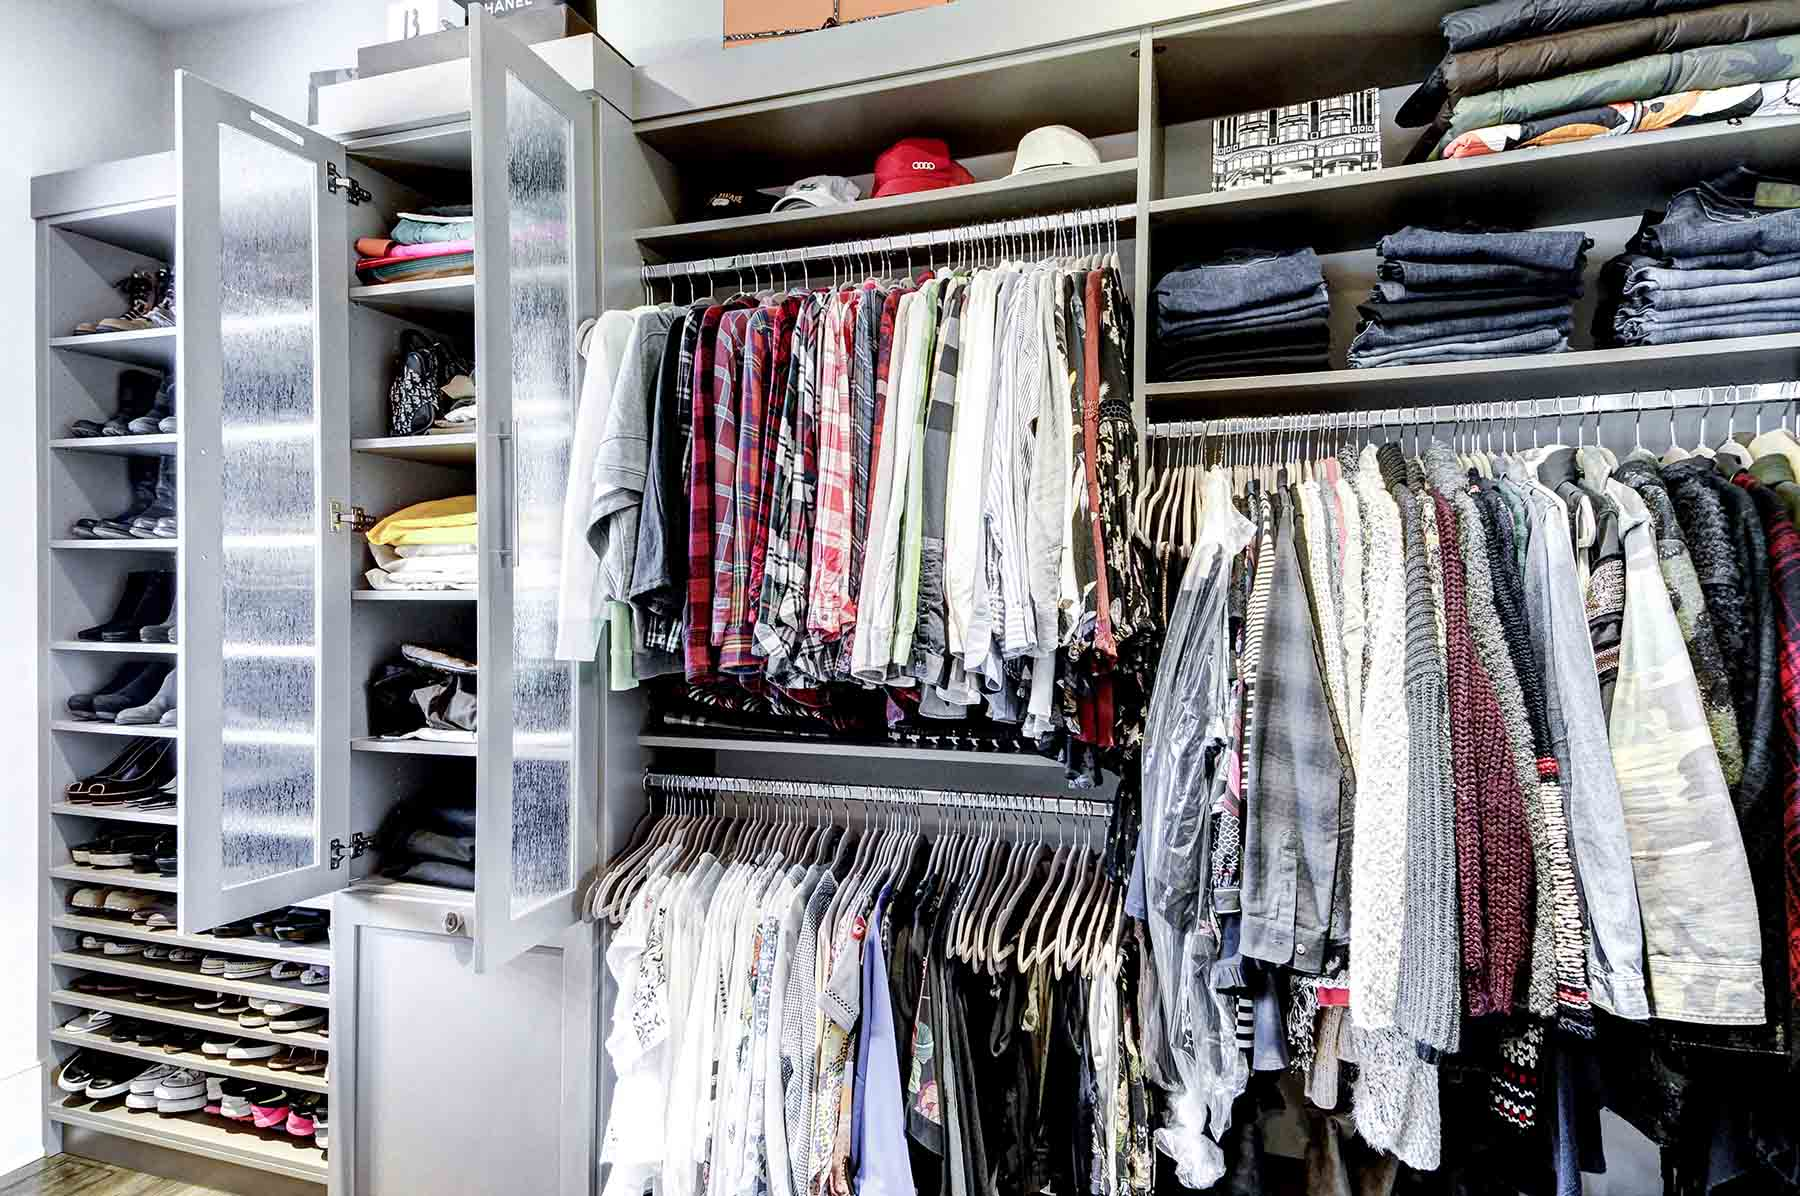 Effective Shoe Storage Solutions For Your Closet The Closet Works